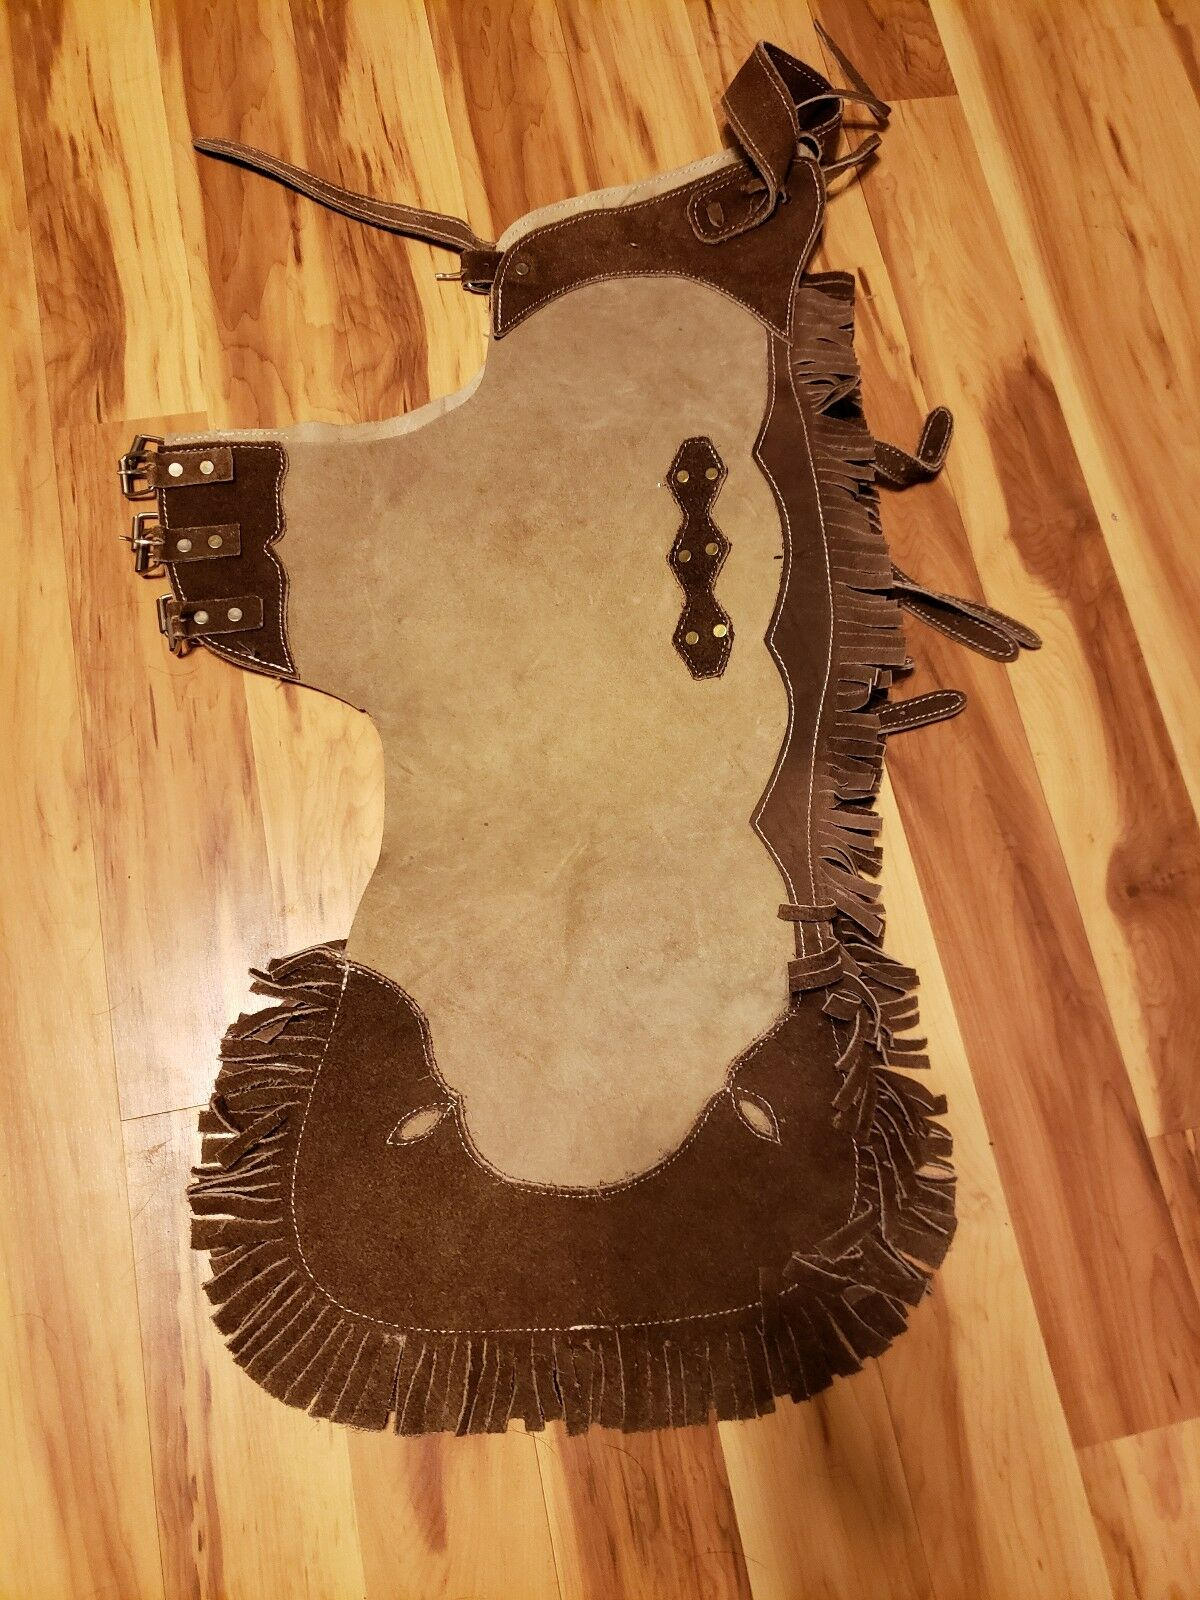 Western Fringed Brown tan Suede Leather Chaps